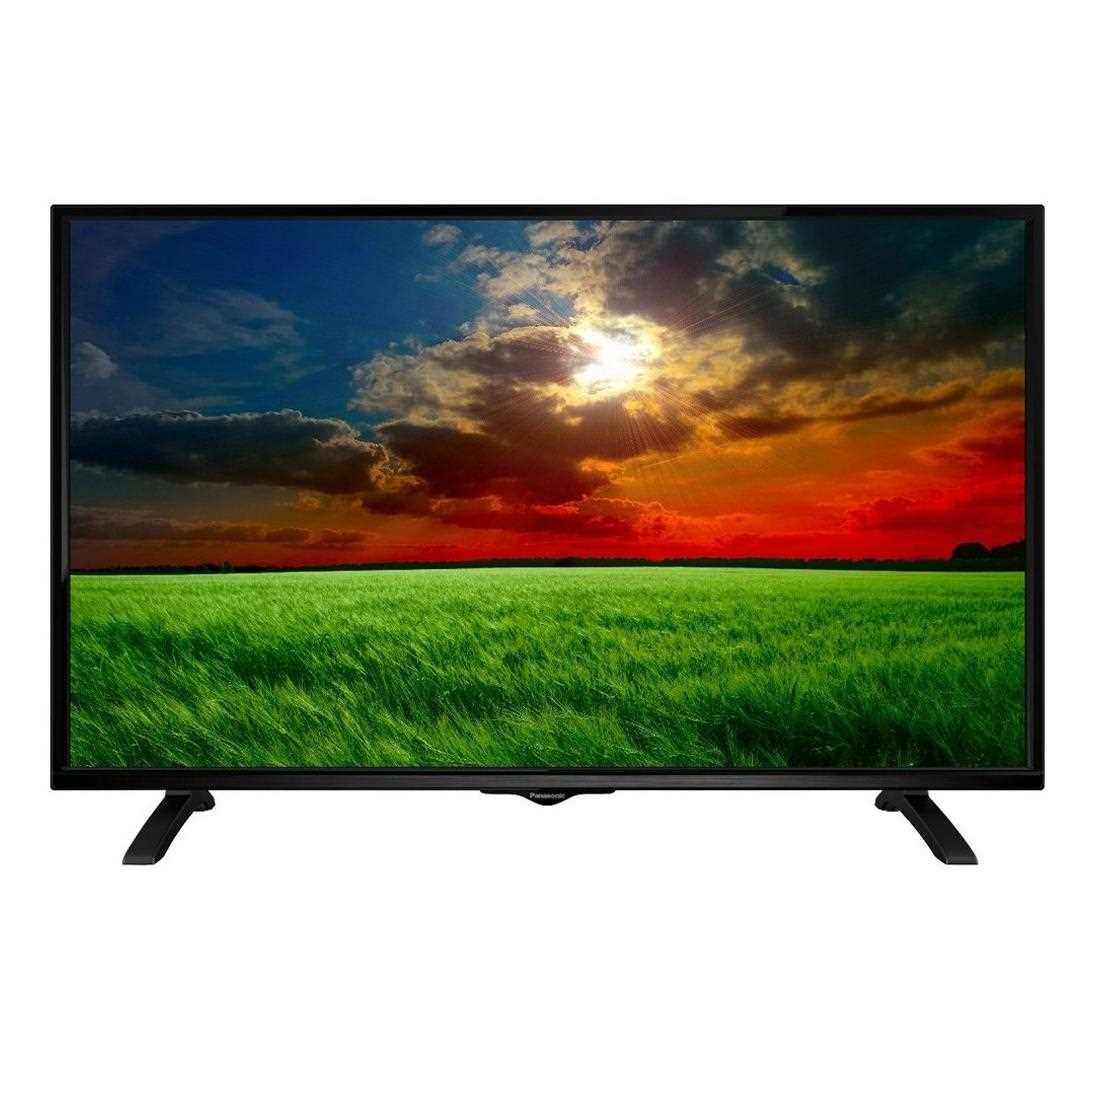 panasonic tv 40 inch. panasonic th 43d350dx 43 inch full hd led television price {25 nov 2017} | reviews and specifications tv 40 f